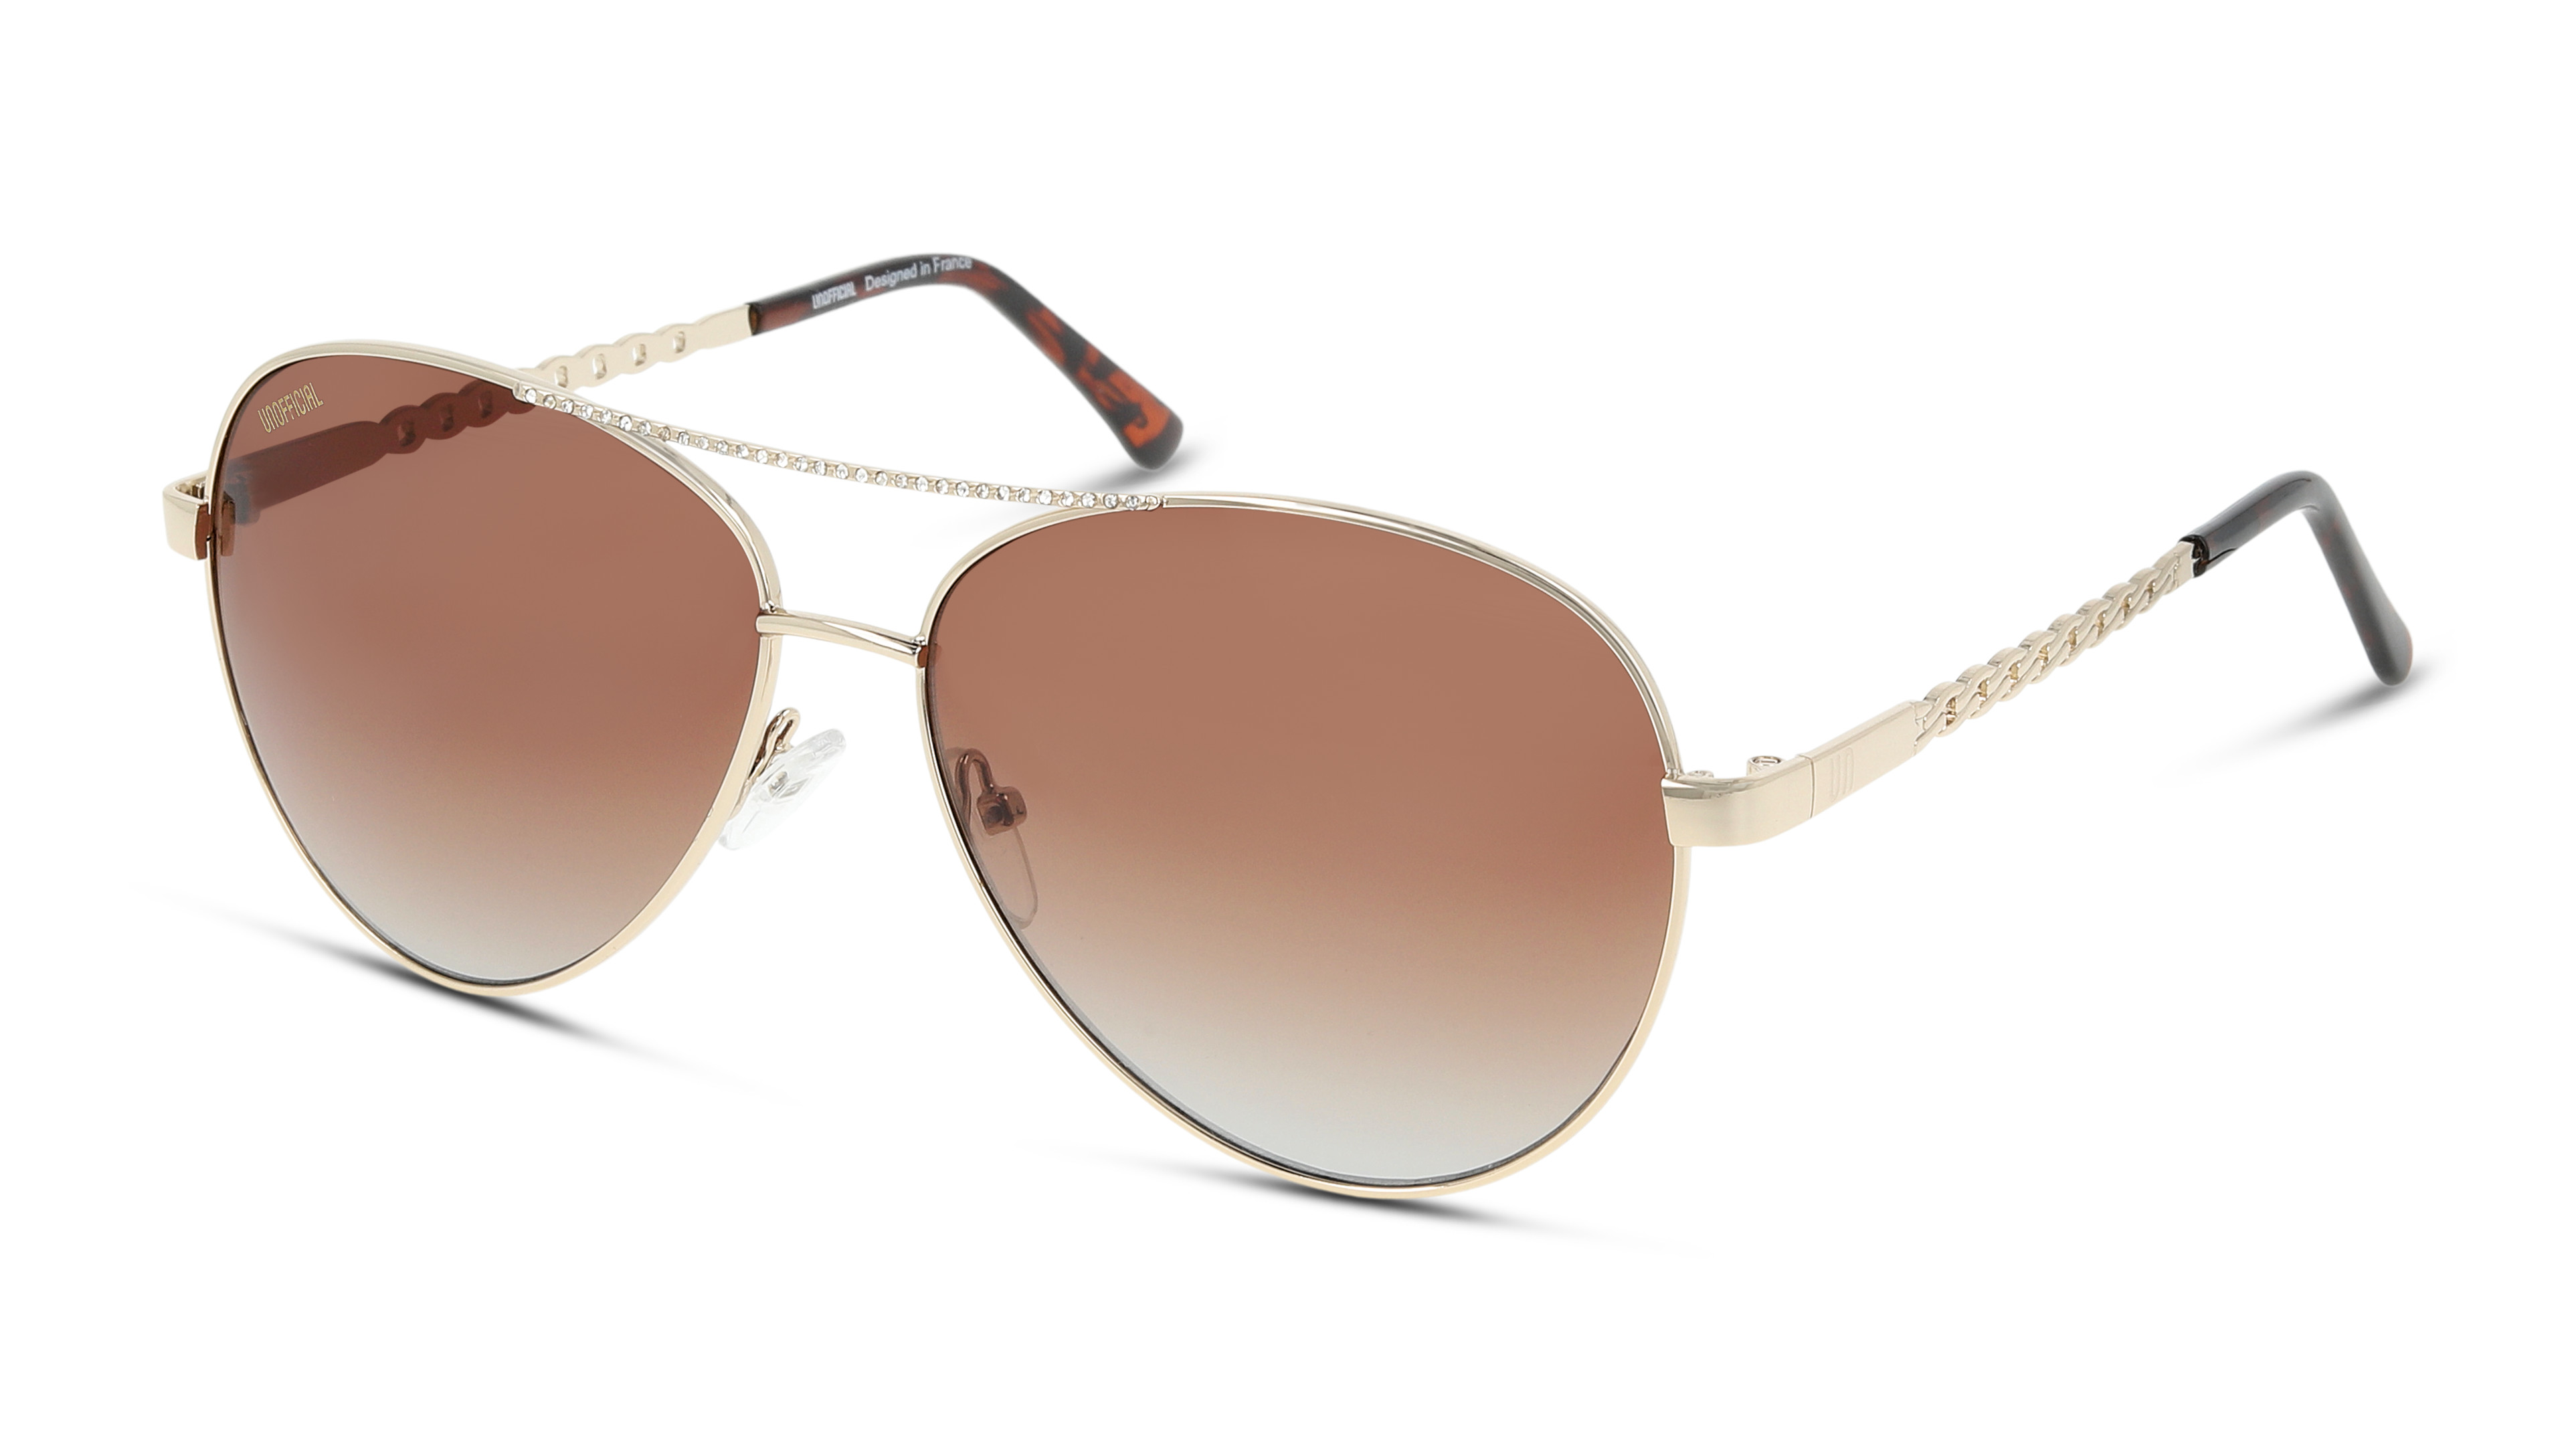 8719154741296-angle-03-unofficial-unsf0034-eyewear-gold-gold